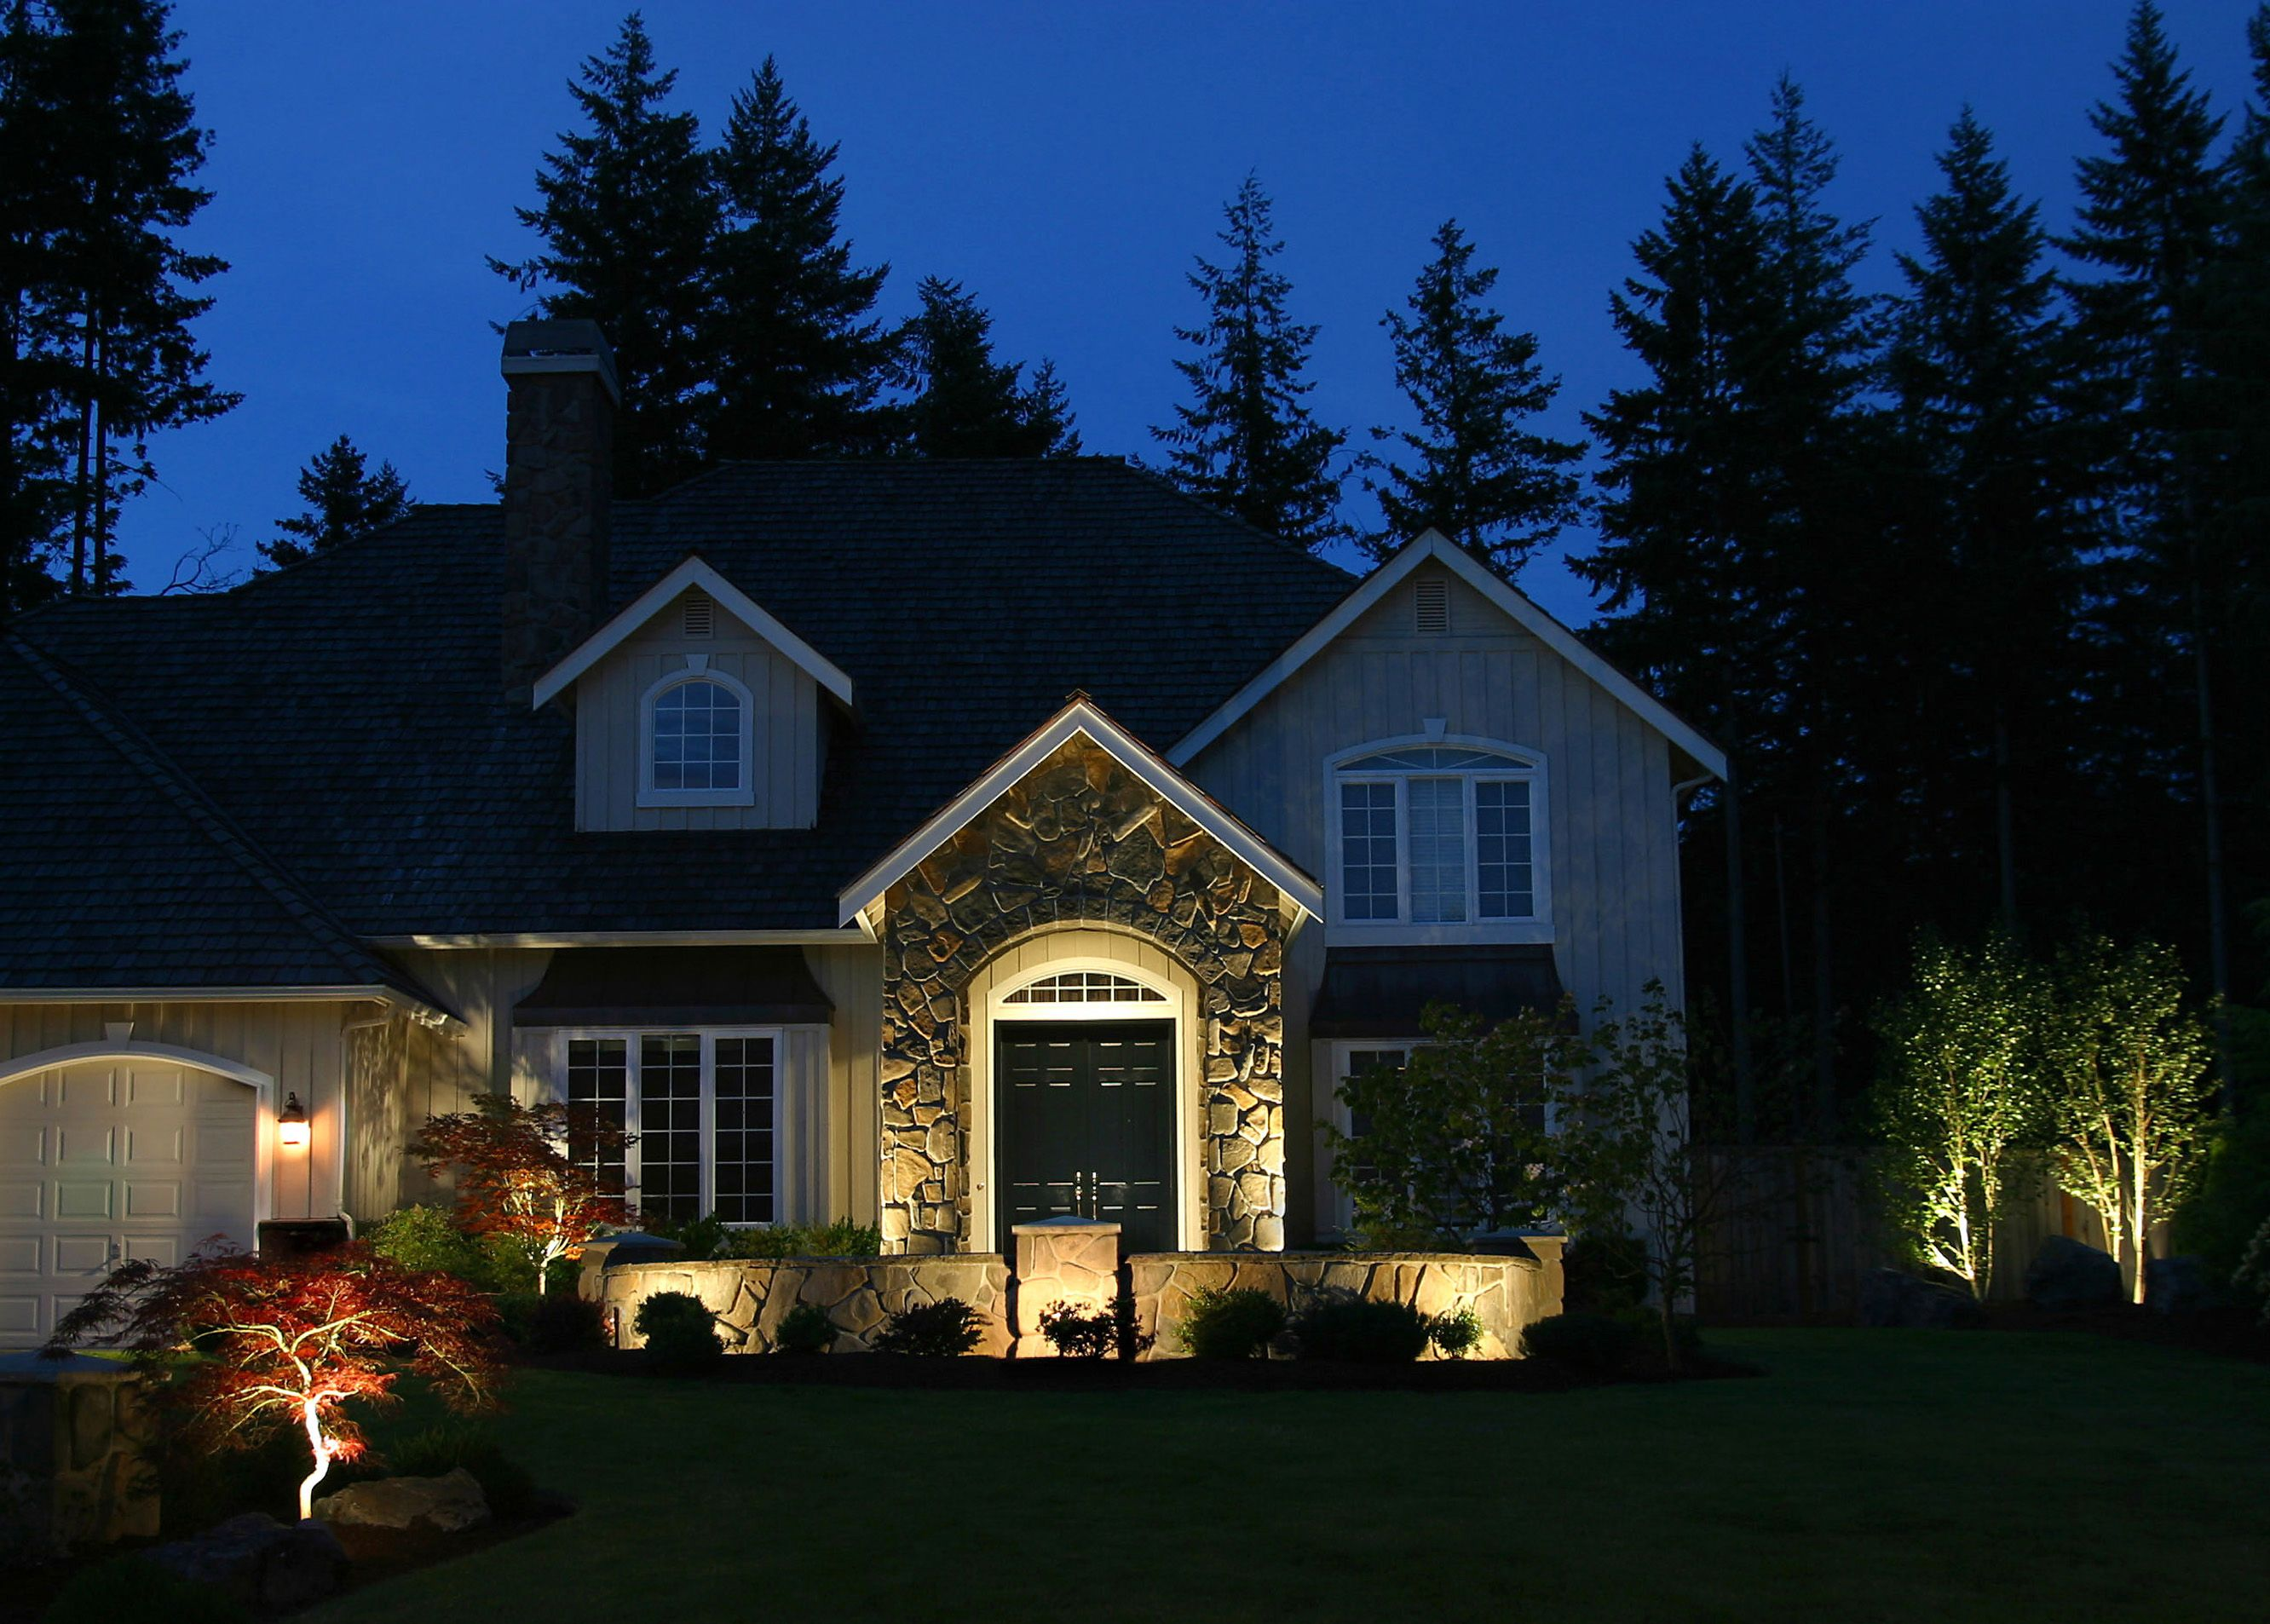 20 Landscaping Lighting Ideas For Front Yard Home Decorating Ideas Front Yard Lighting Landscape Lighting Ideas Front Yards Landscape Lighting Design